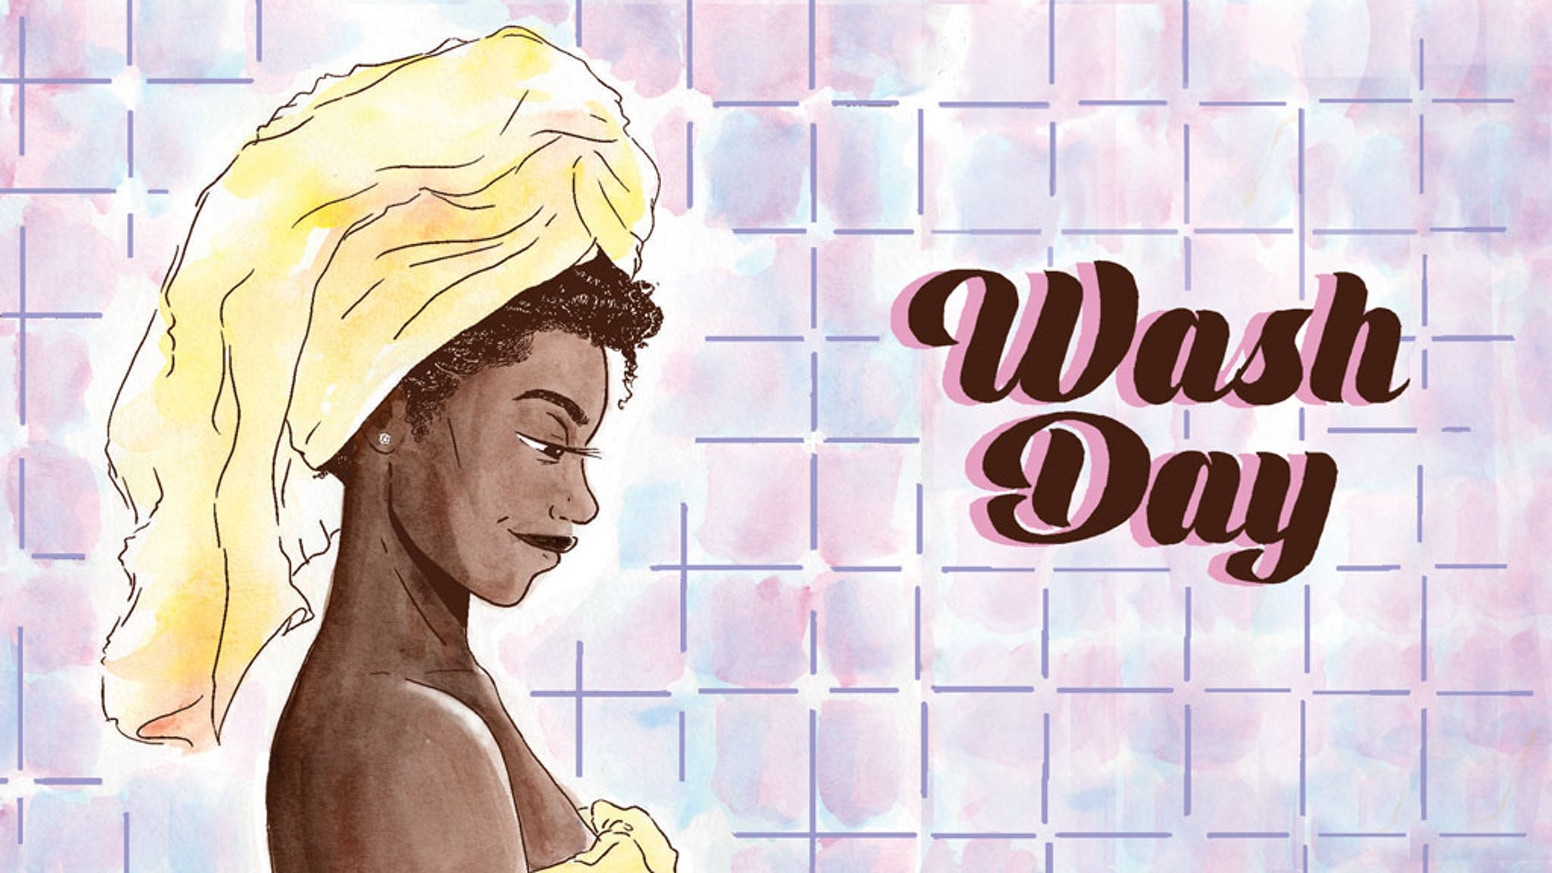 Wash Day is a slice-of-life comic that pays tribute to the beauty and endurance of Black women and their hair.